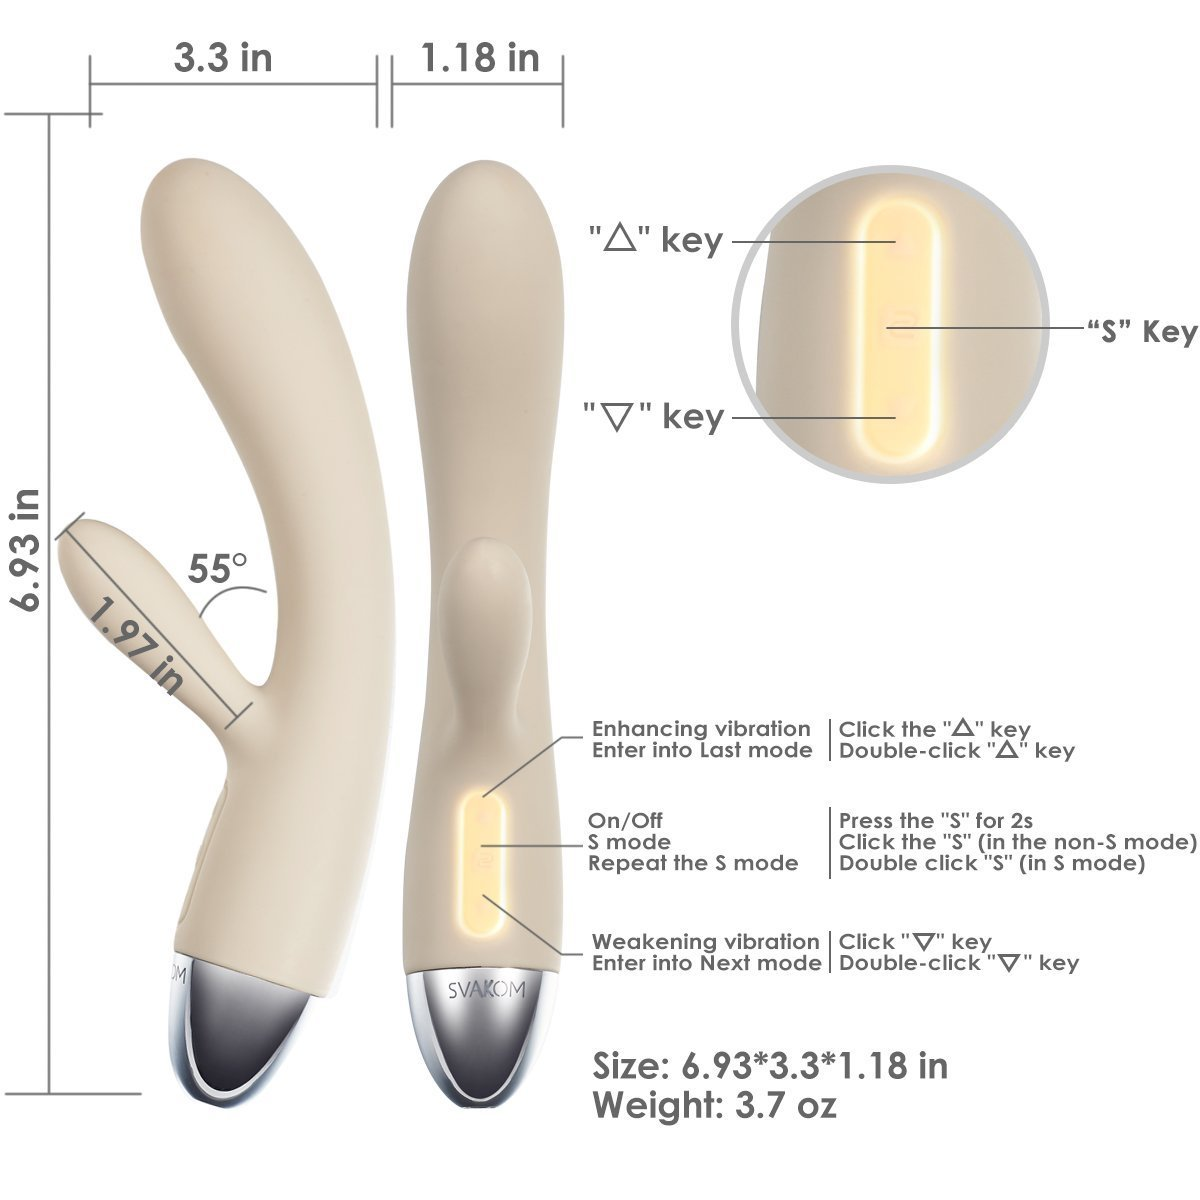 SVAKOM Rabbit Vibrator Rechargeable Personal Wand Massager with Touch Sensor